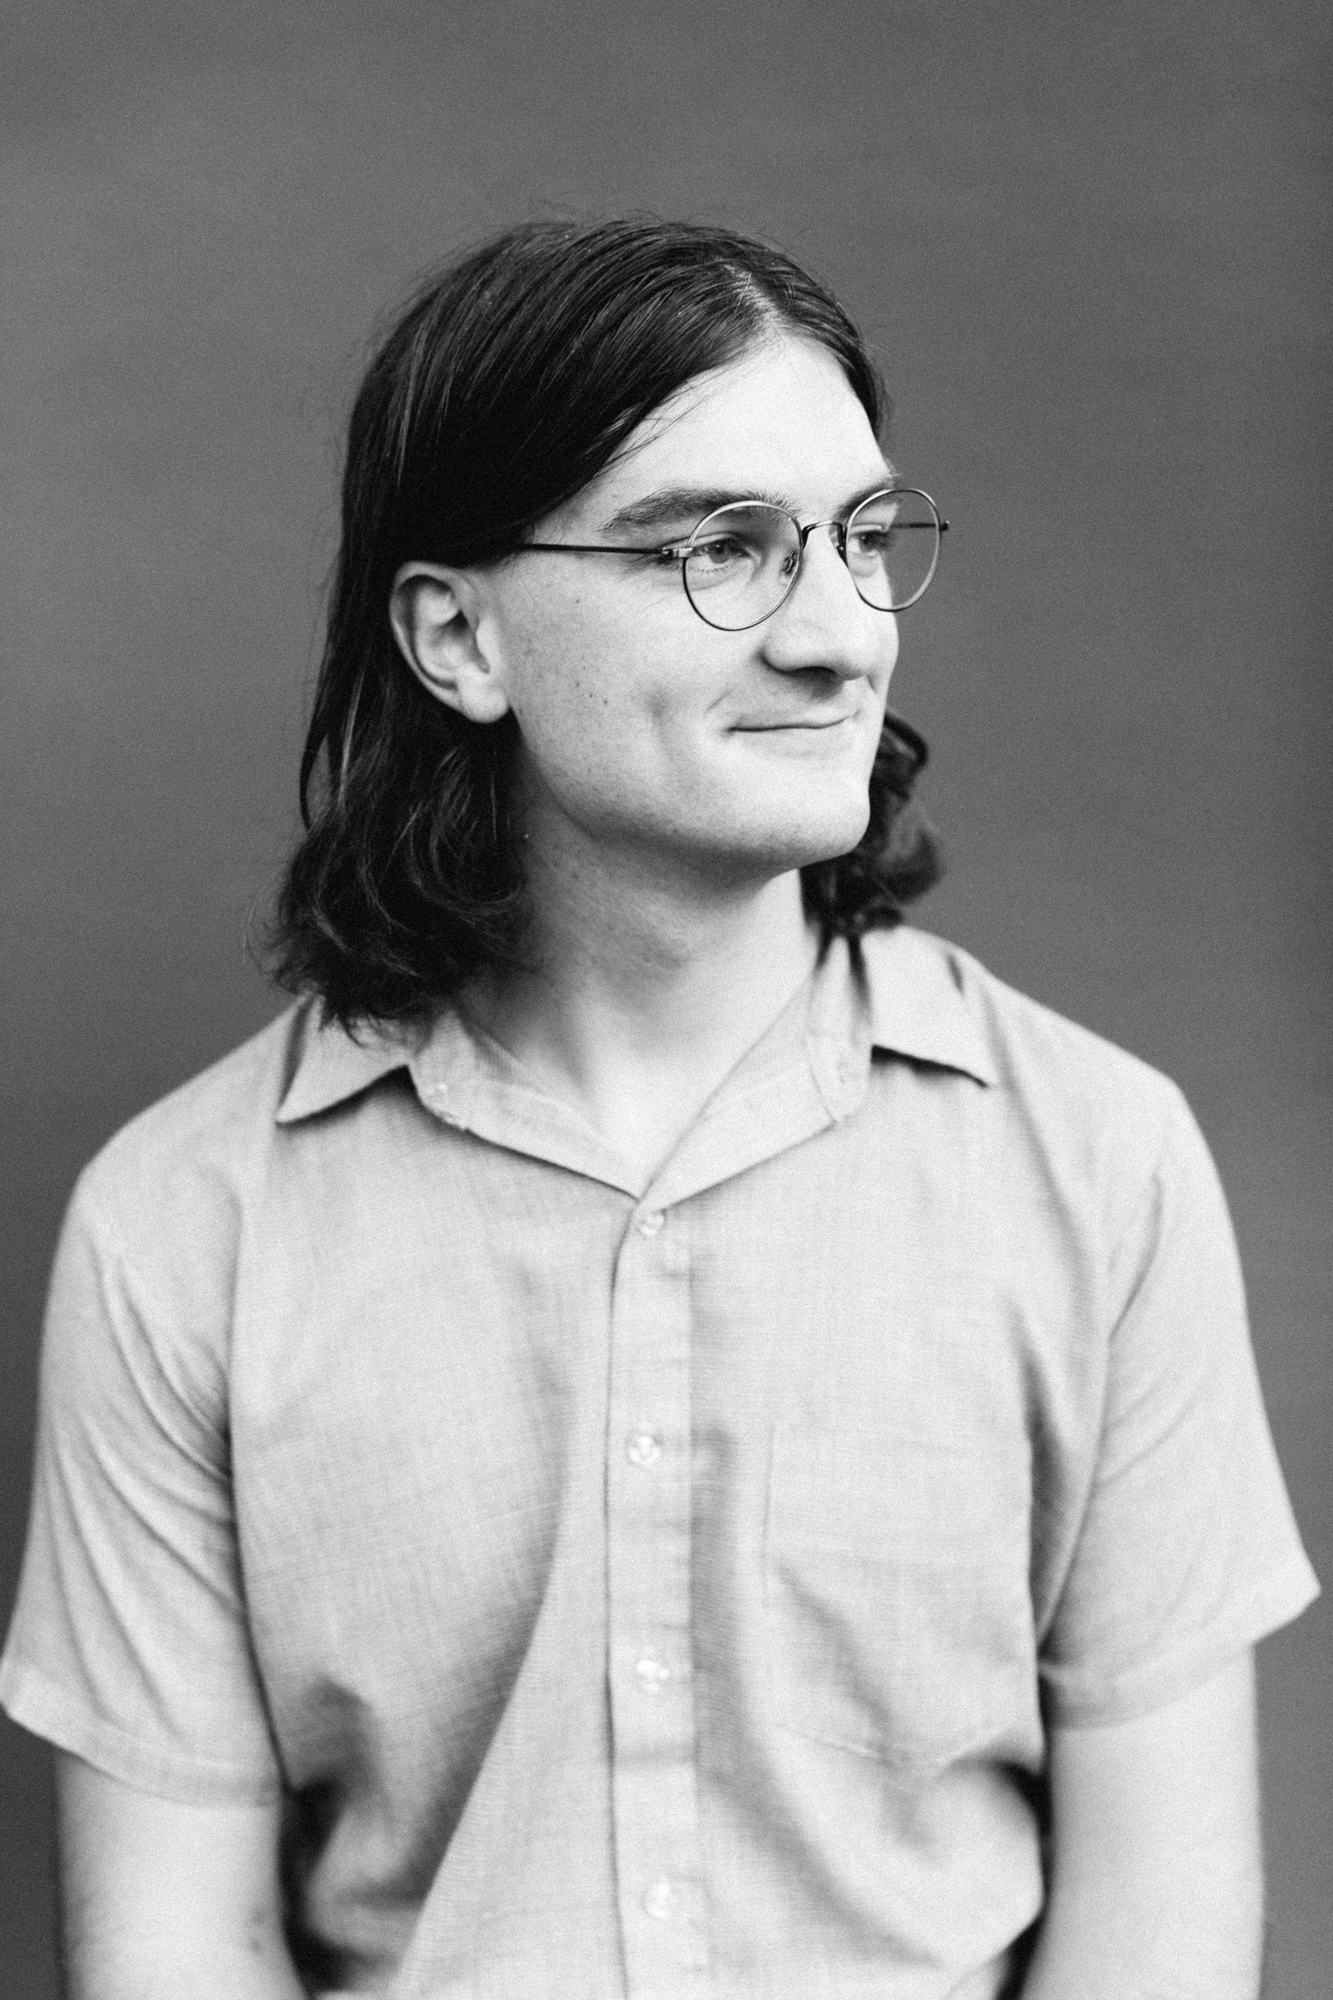 Headshot of Aaron Lowell Denton at Anna Powell Teeter's photography and videography studio in Bloomington, Indiana.